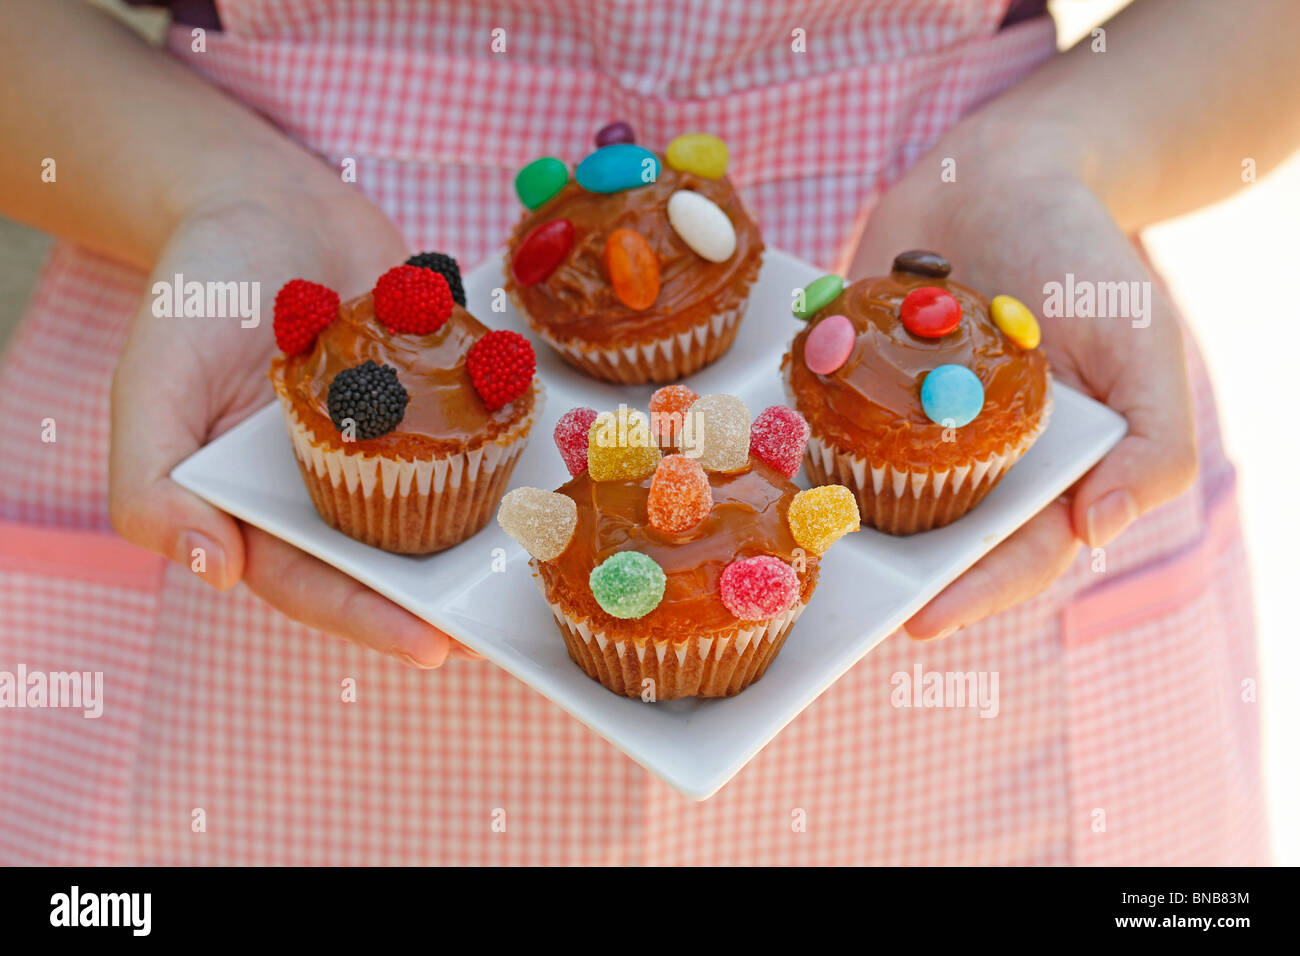 Easy homemade cupcakes. Recipe available. - Stock Image